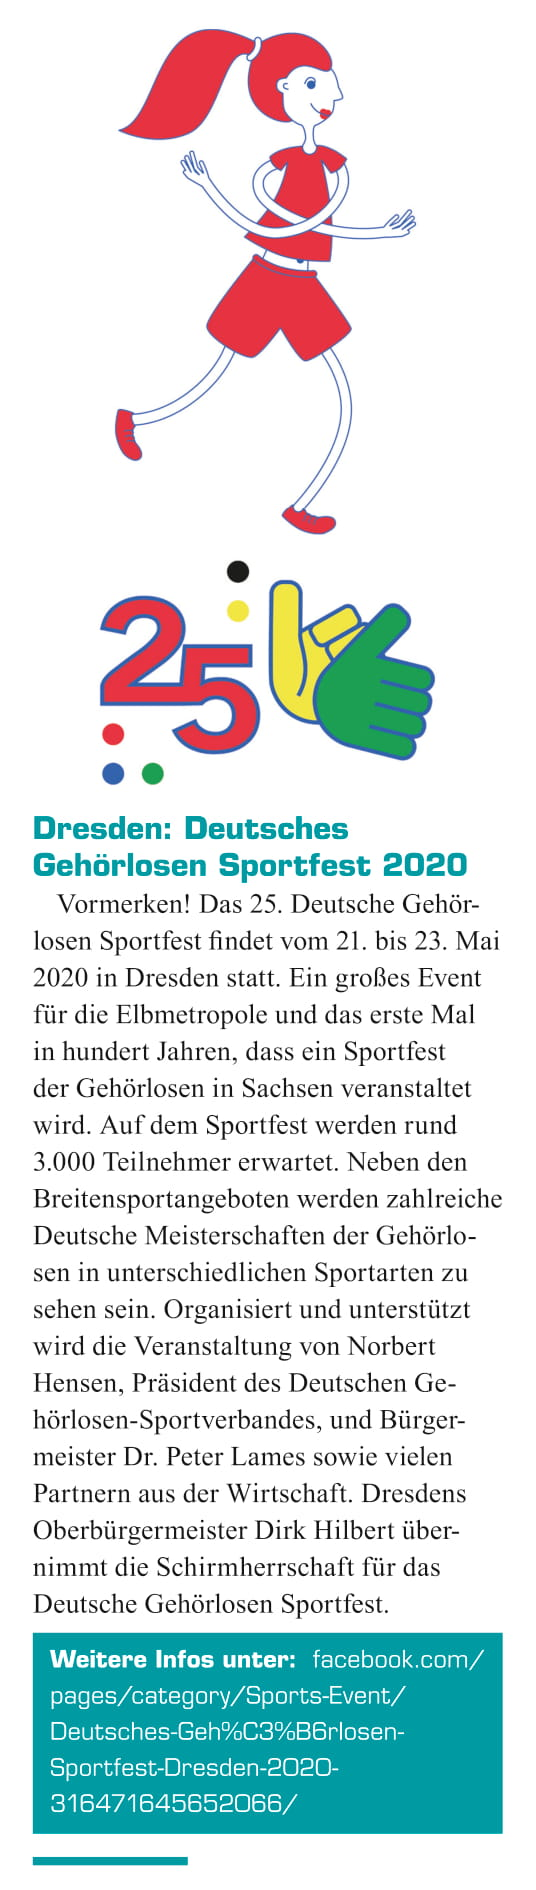 25_deutsches_gehoerlosensportfest_2020_news_lifeinsight_2